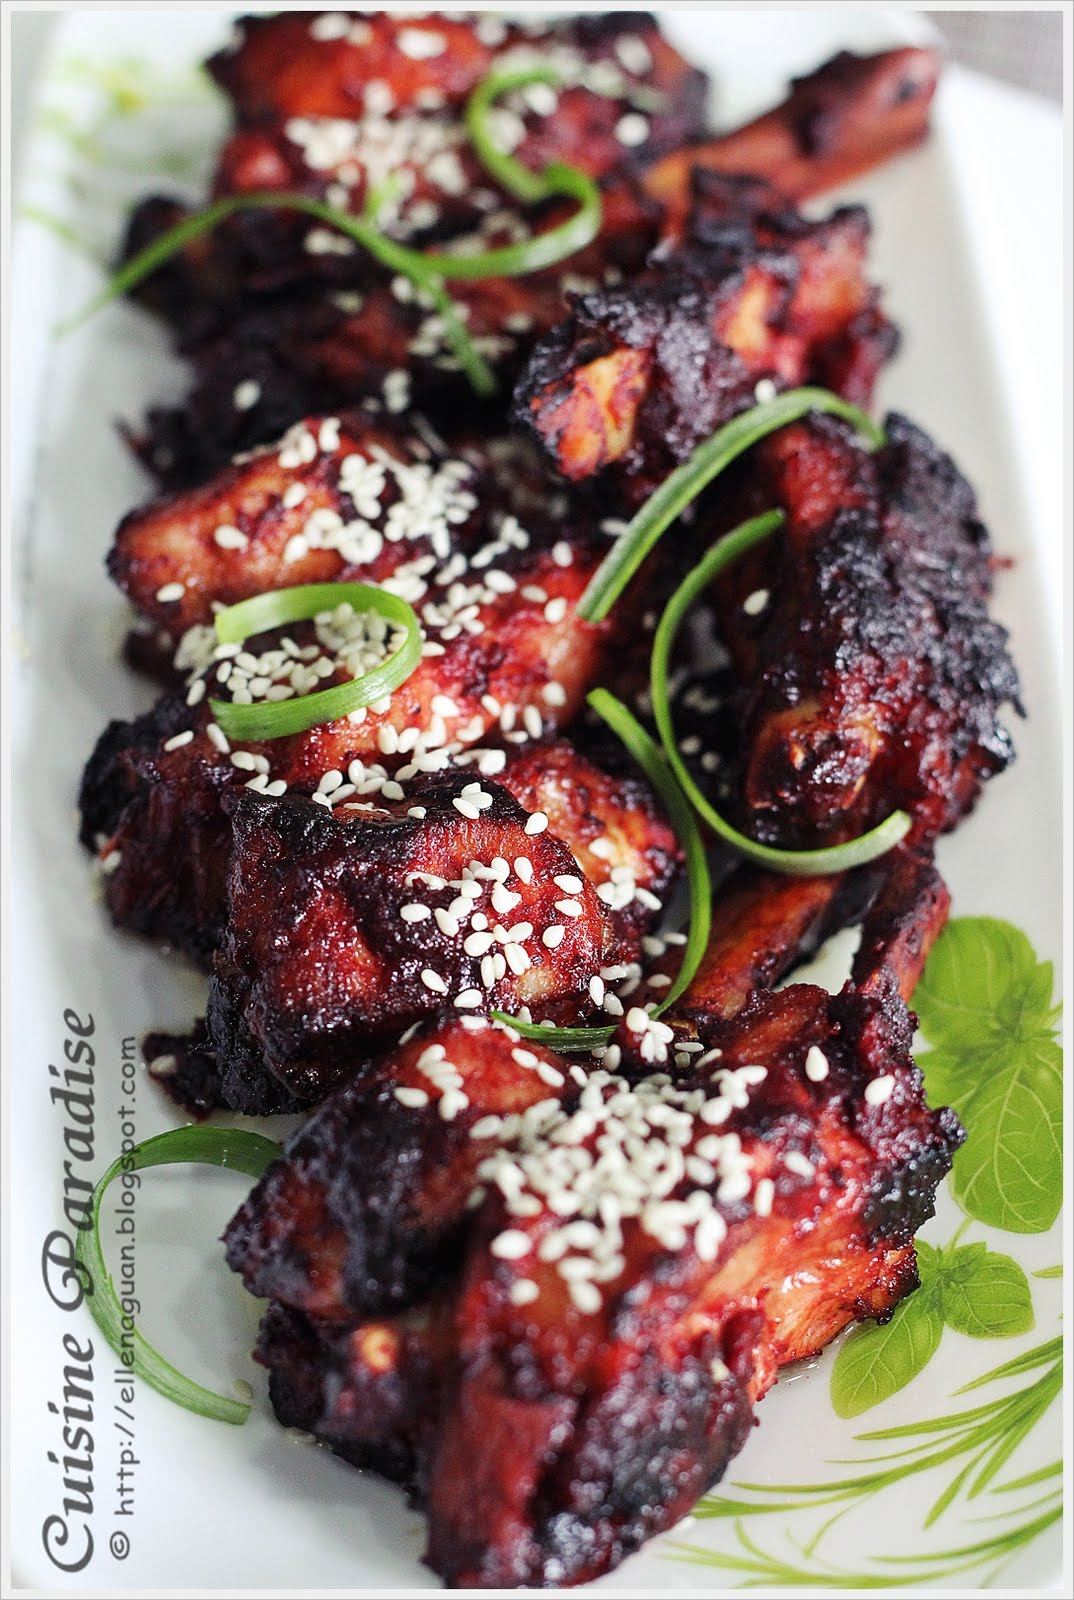 Baked spare ribs with red wine lees recipe recipes baked spare ribs with red wine lees forumfinder Choice Image